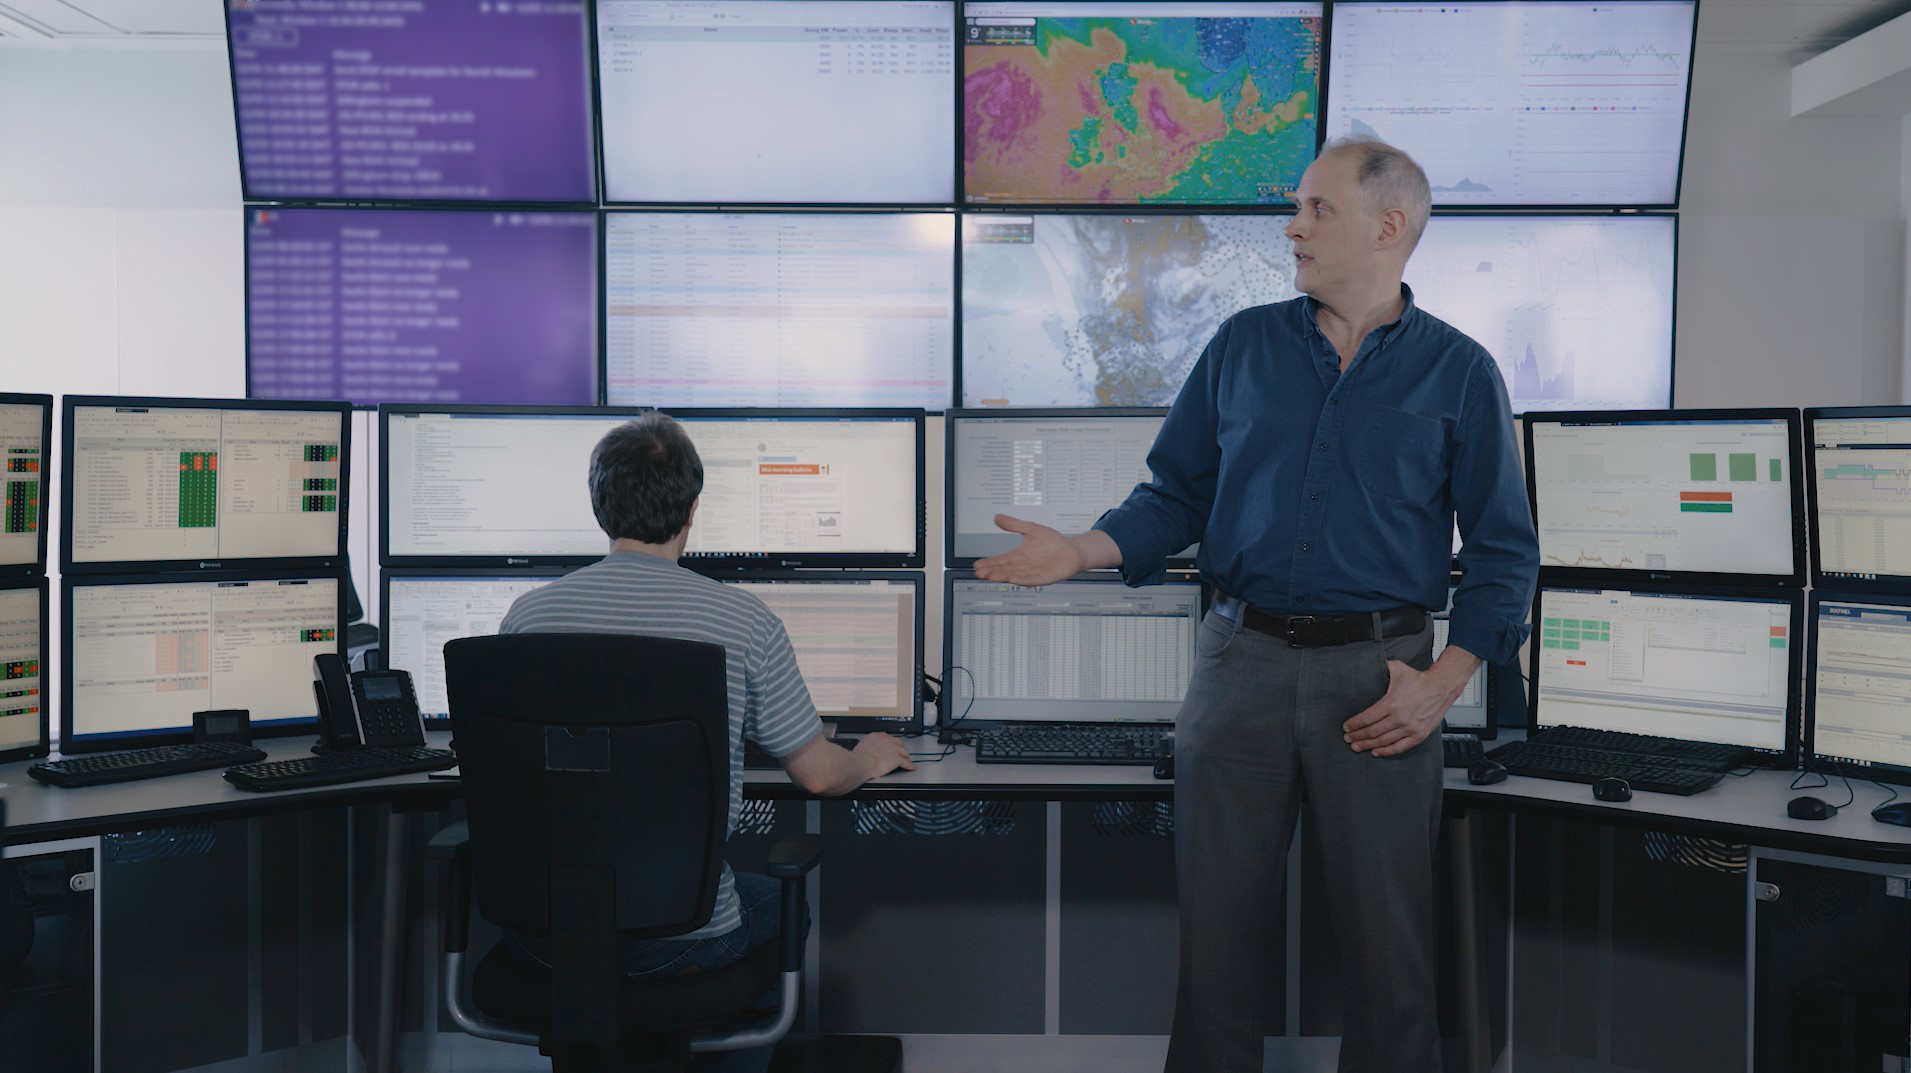 Take a peek into Flexitricity's 24/7 control room with our founder Alastair Martin.